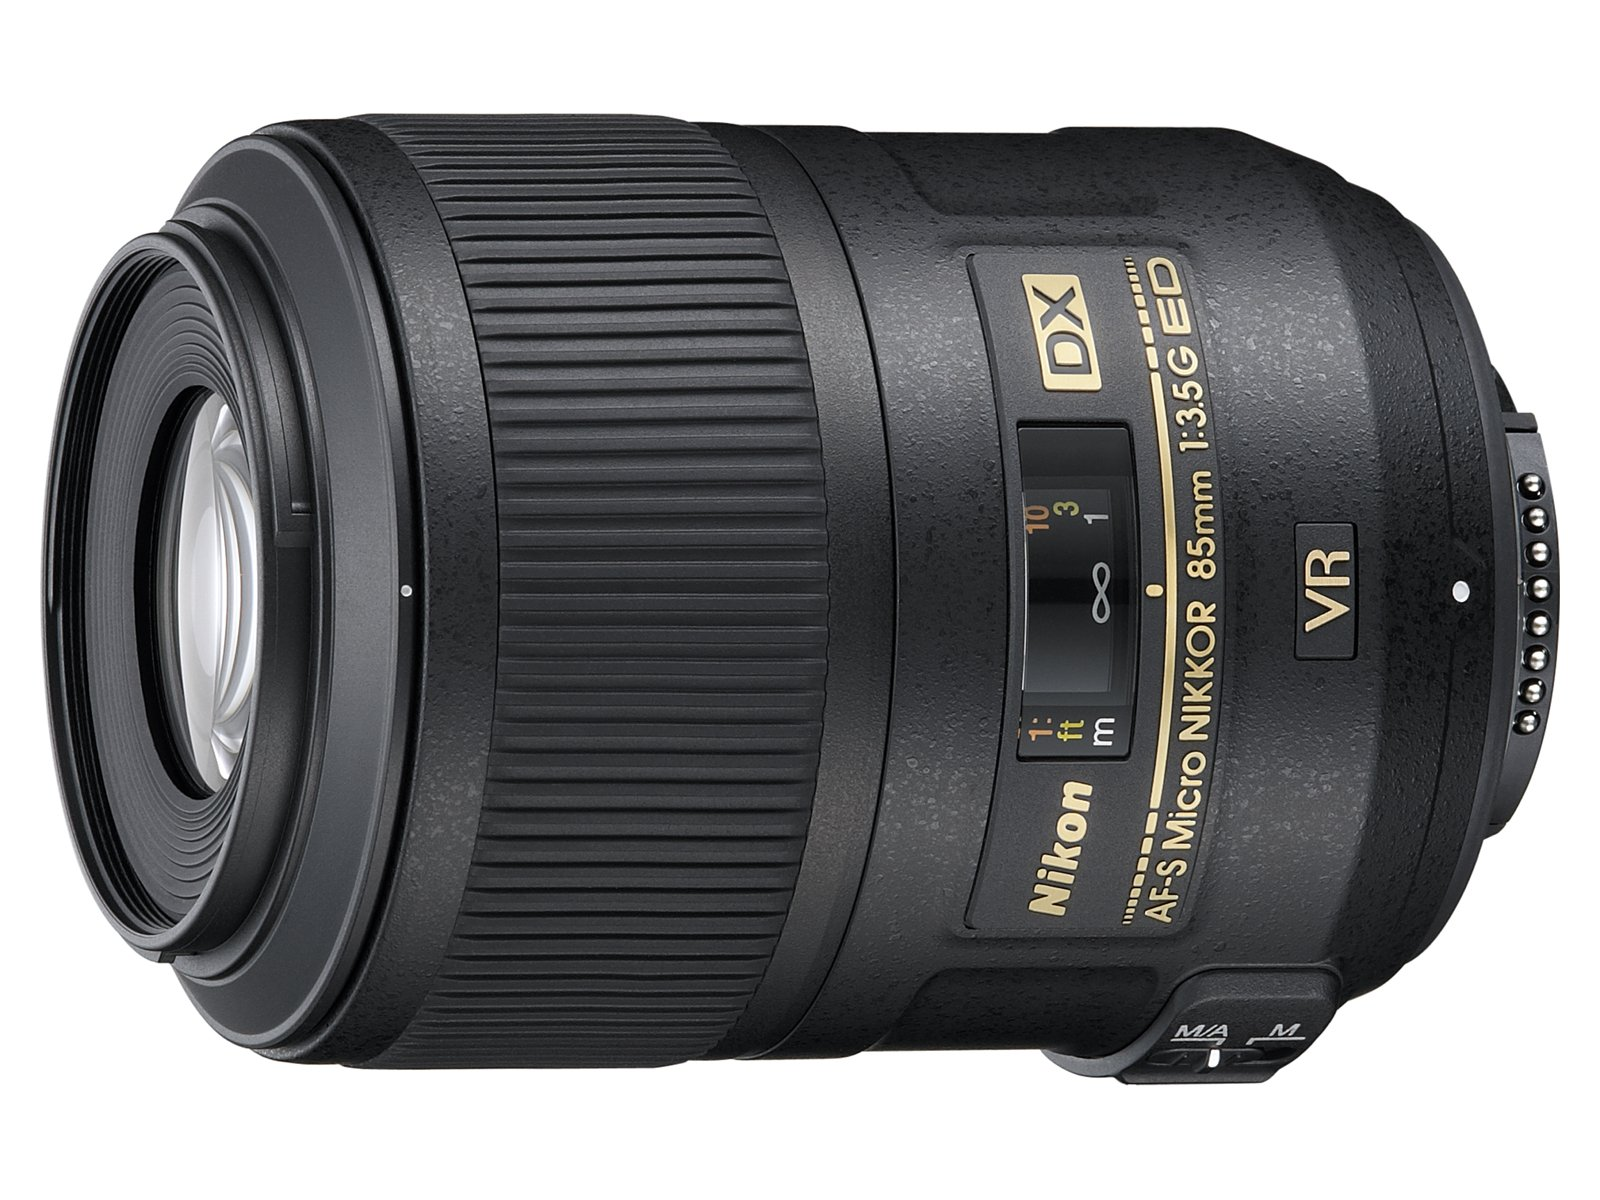 [해외]Nikon 프라임 마이크로 렌즈 AF-S DX Micro NIKKOR 85mm f3.5G ED VR 니콘 DX 포맷 전용 / Nikon single focus micro lens af-s DX Micro NIKKOR 85mm f3.5 g ED VR Nikon DX format dedicated